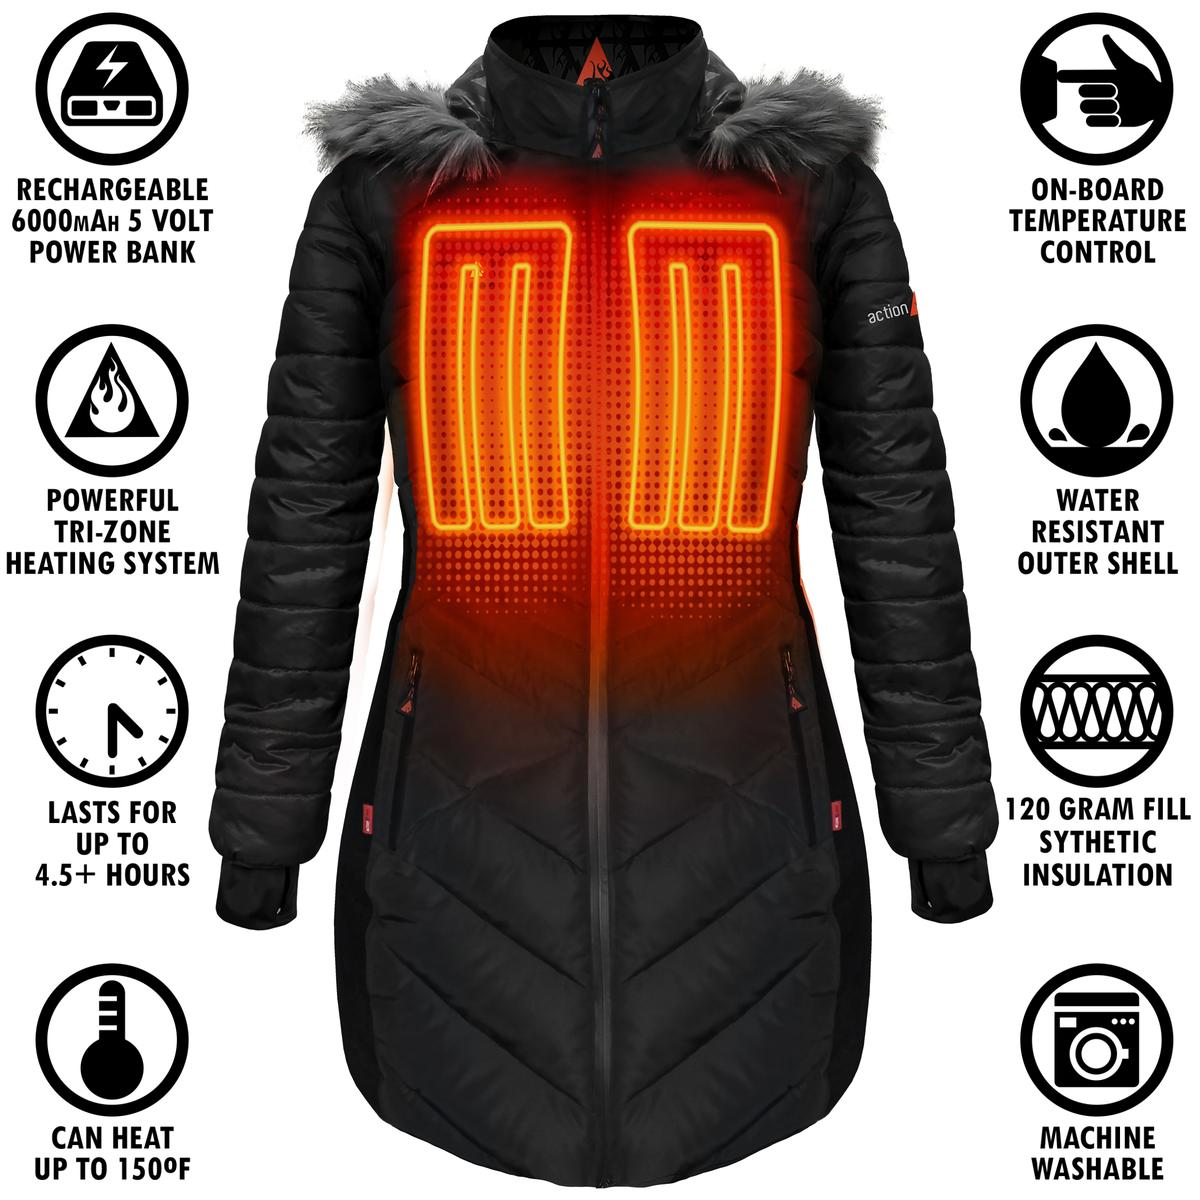 ActionHeat 5V Heated Long Puffer Jacket W/ Hood - Women's - Info